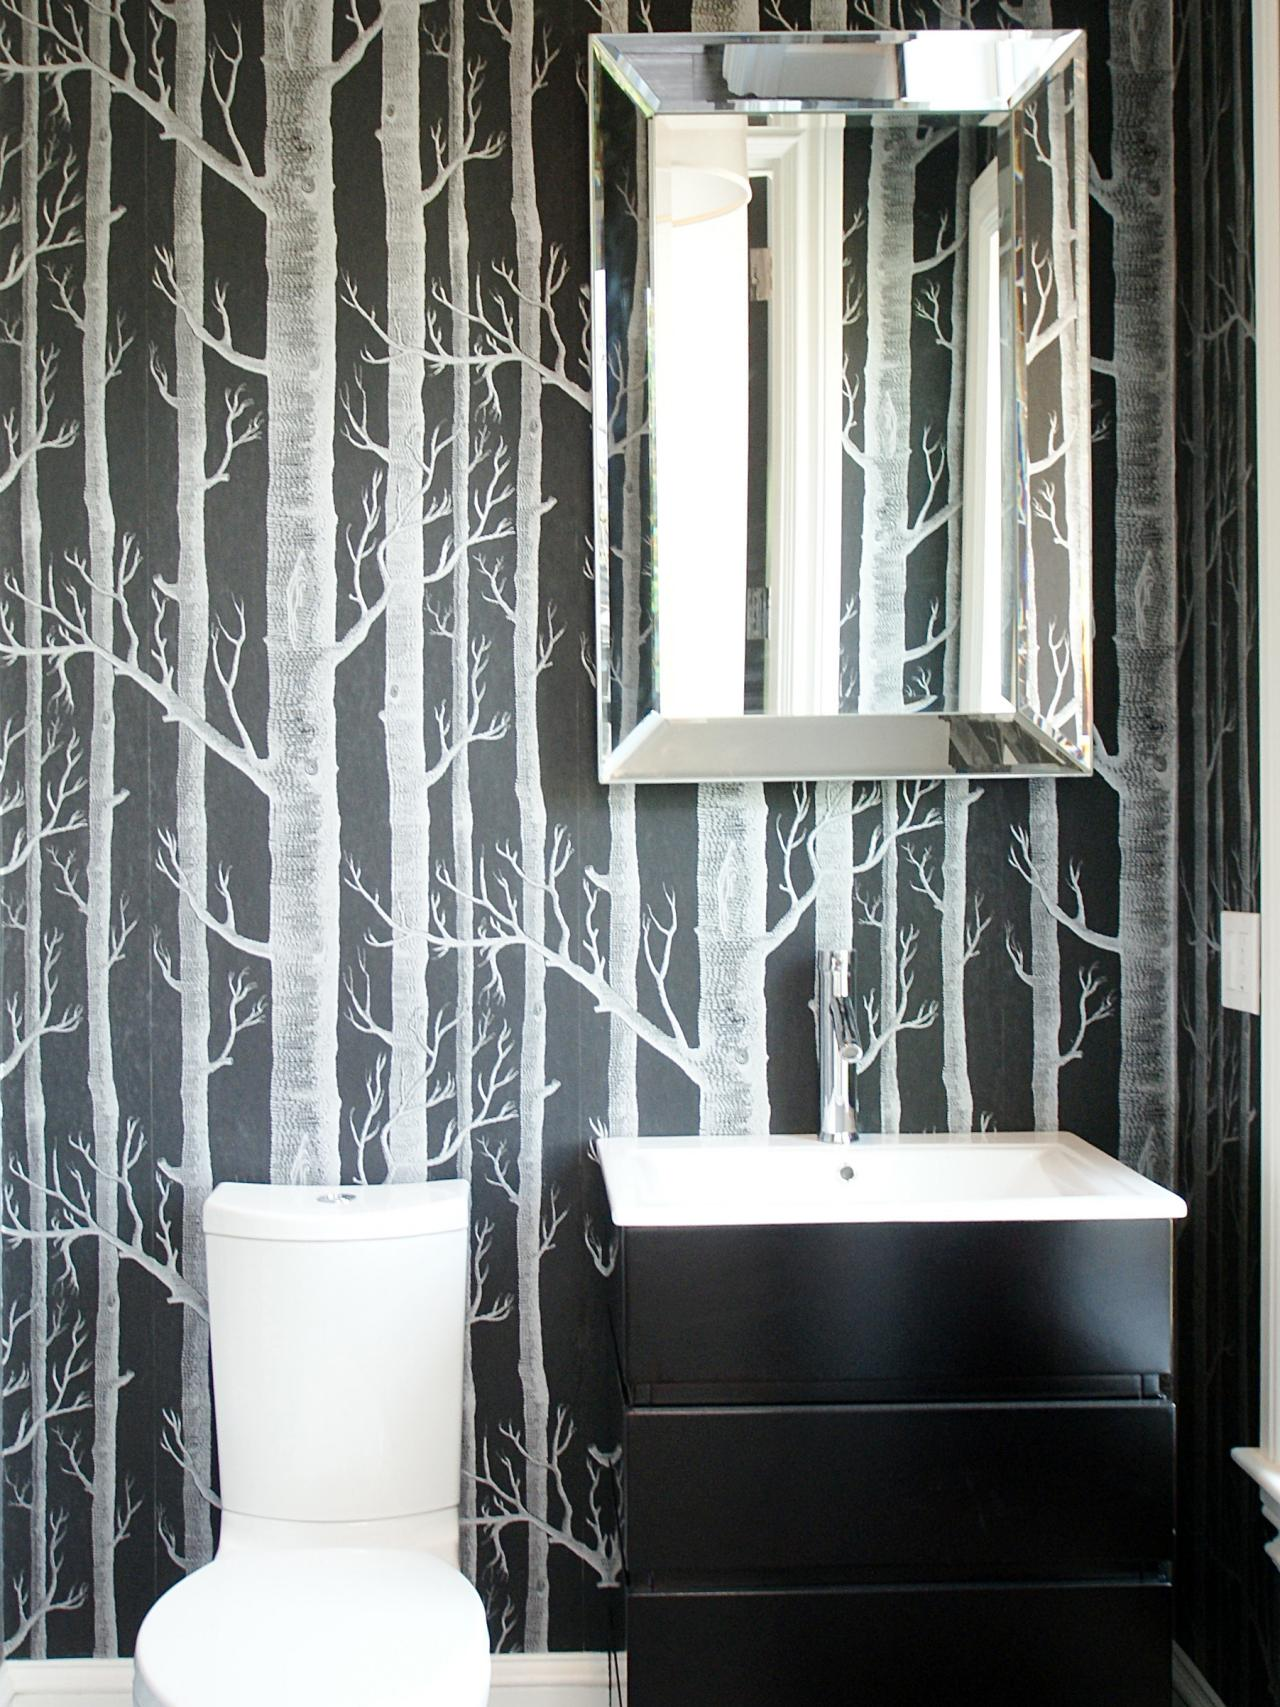 Nice Black And White Bathroom With Bold Tree Wallpaper